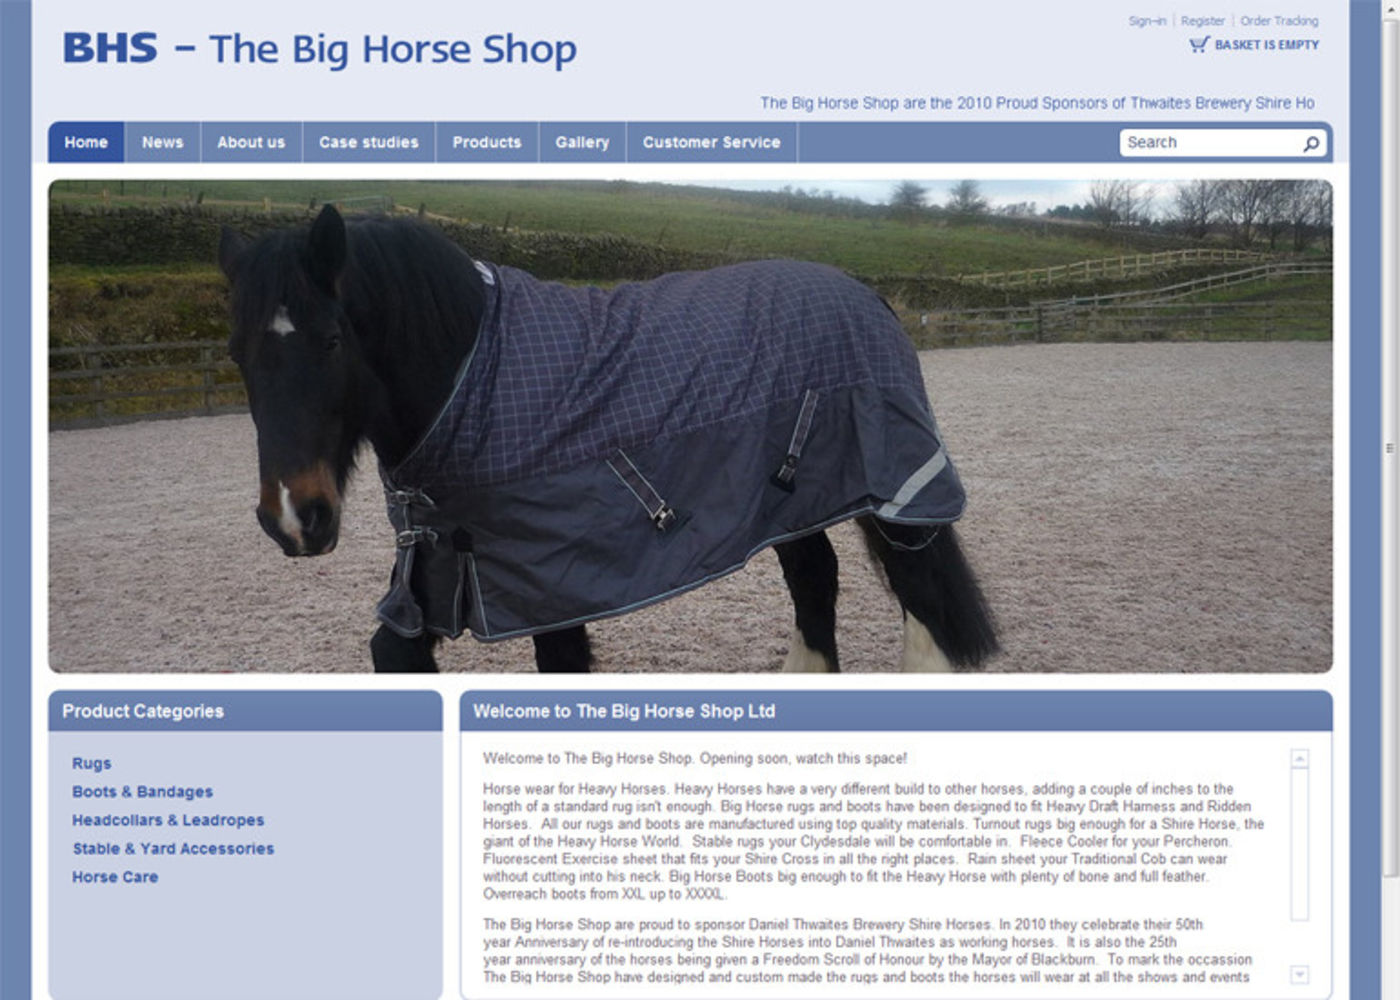 The Big Horse Shop (2009) Homepage header